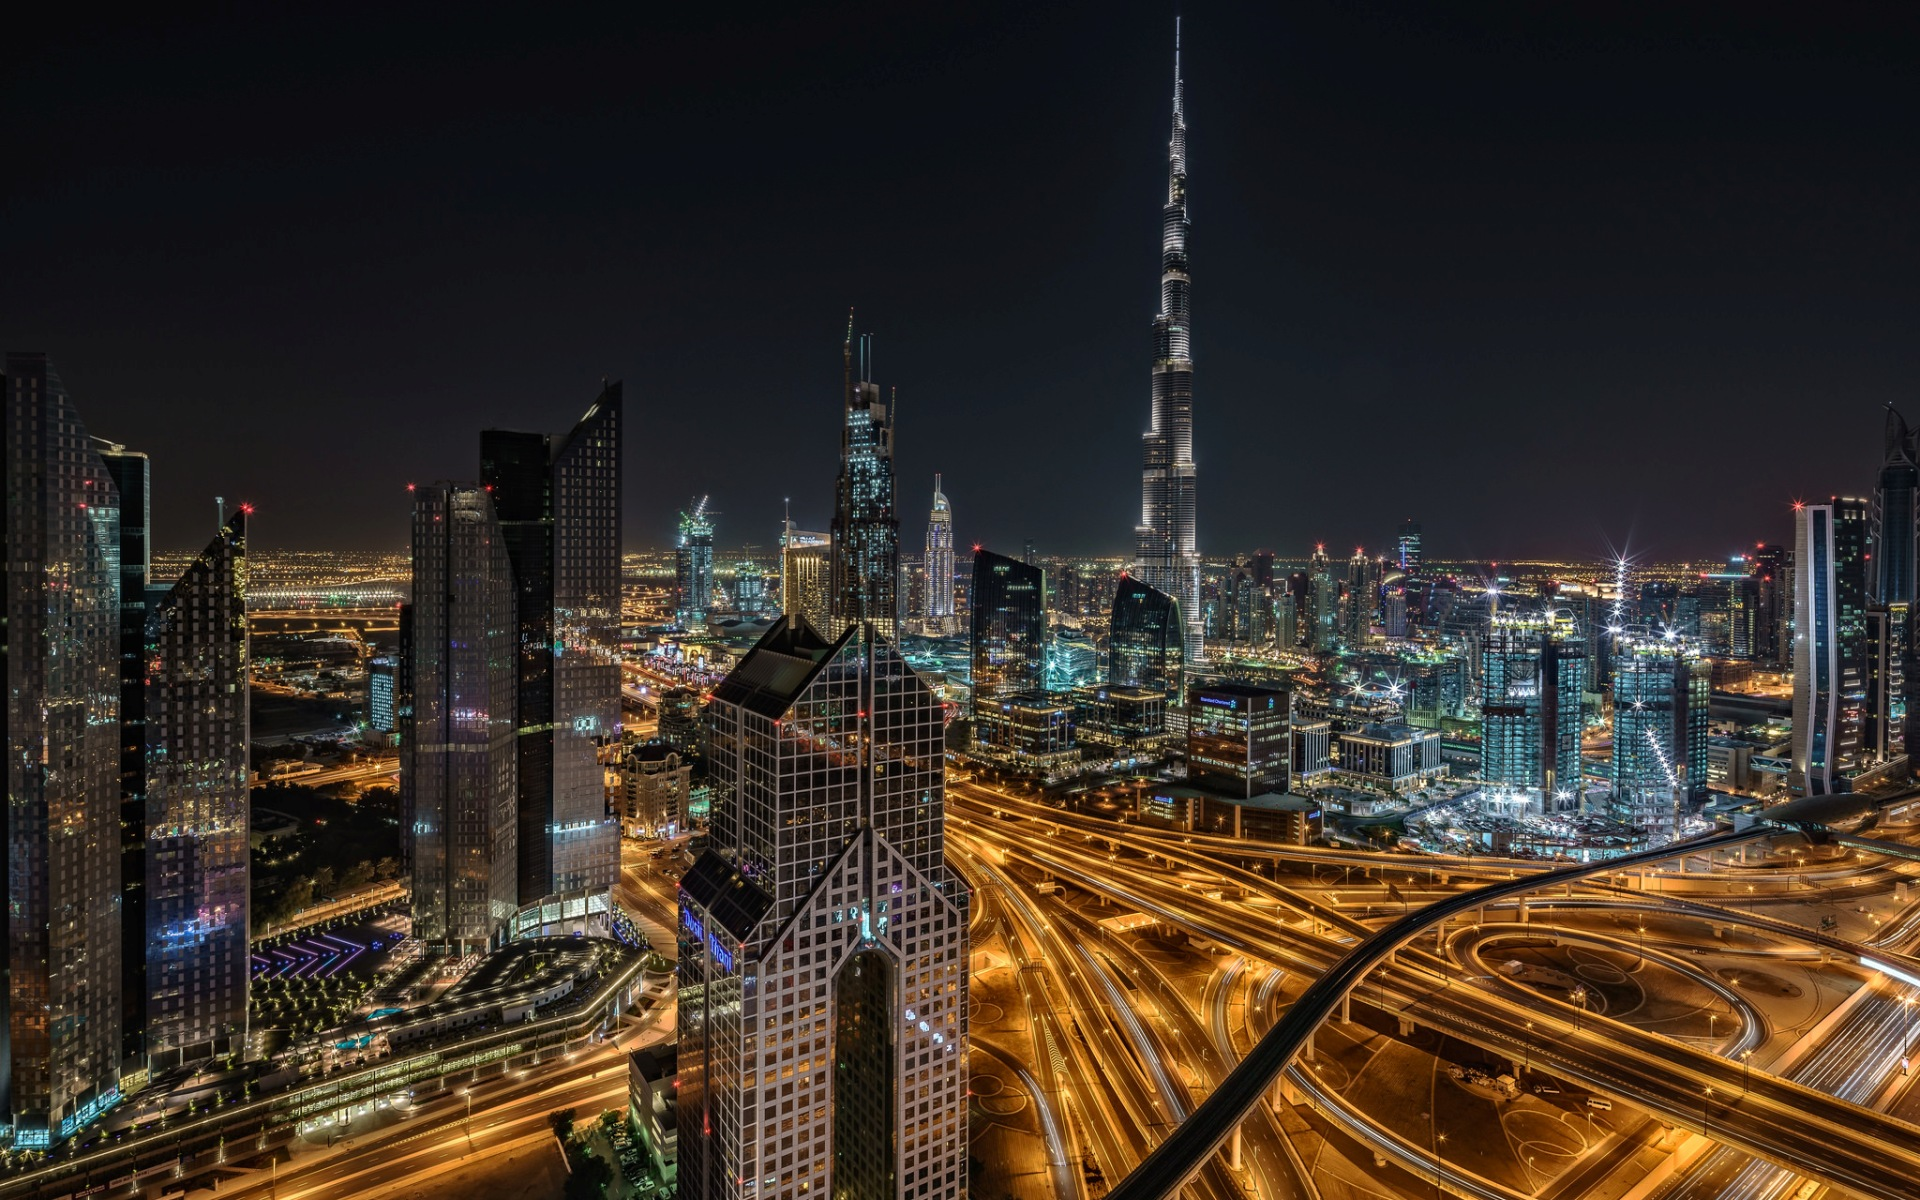 Skyline Of Dubai With A View To Burj Khalifa